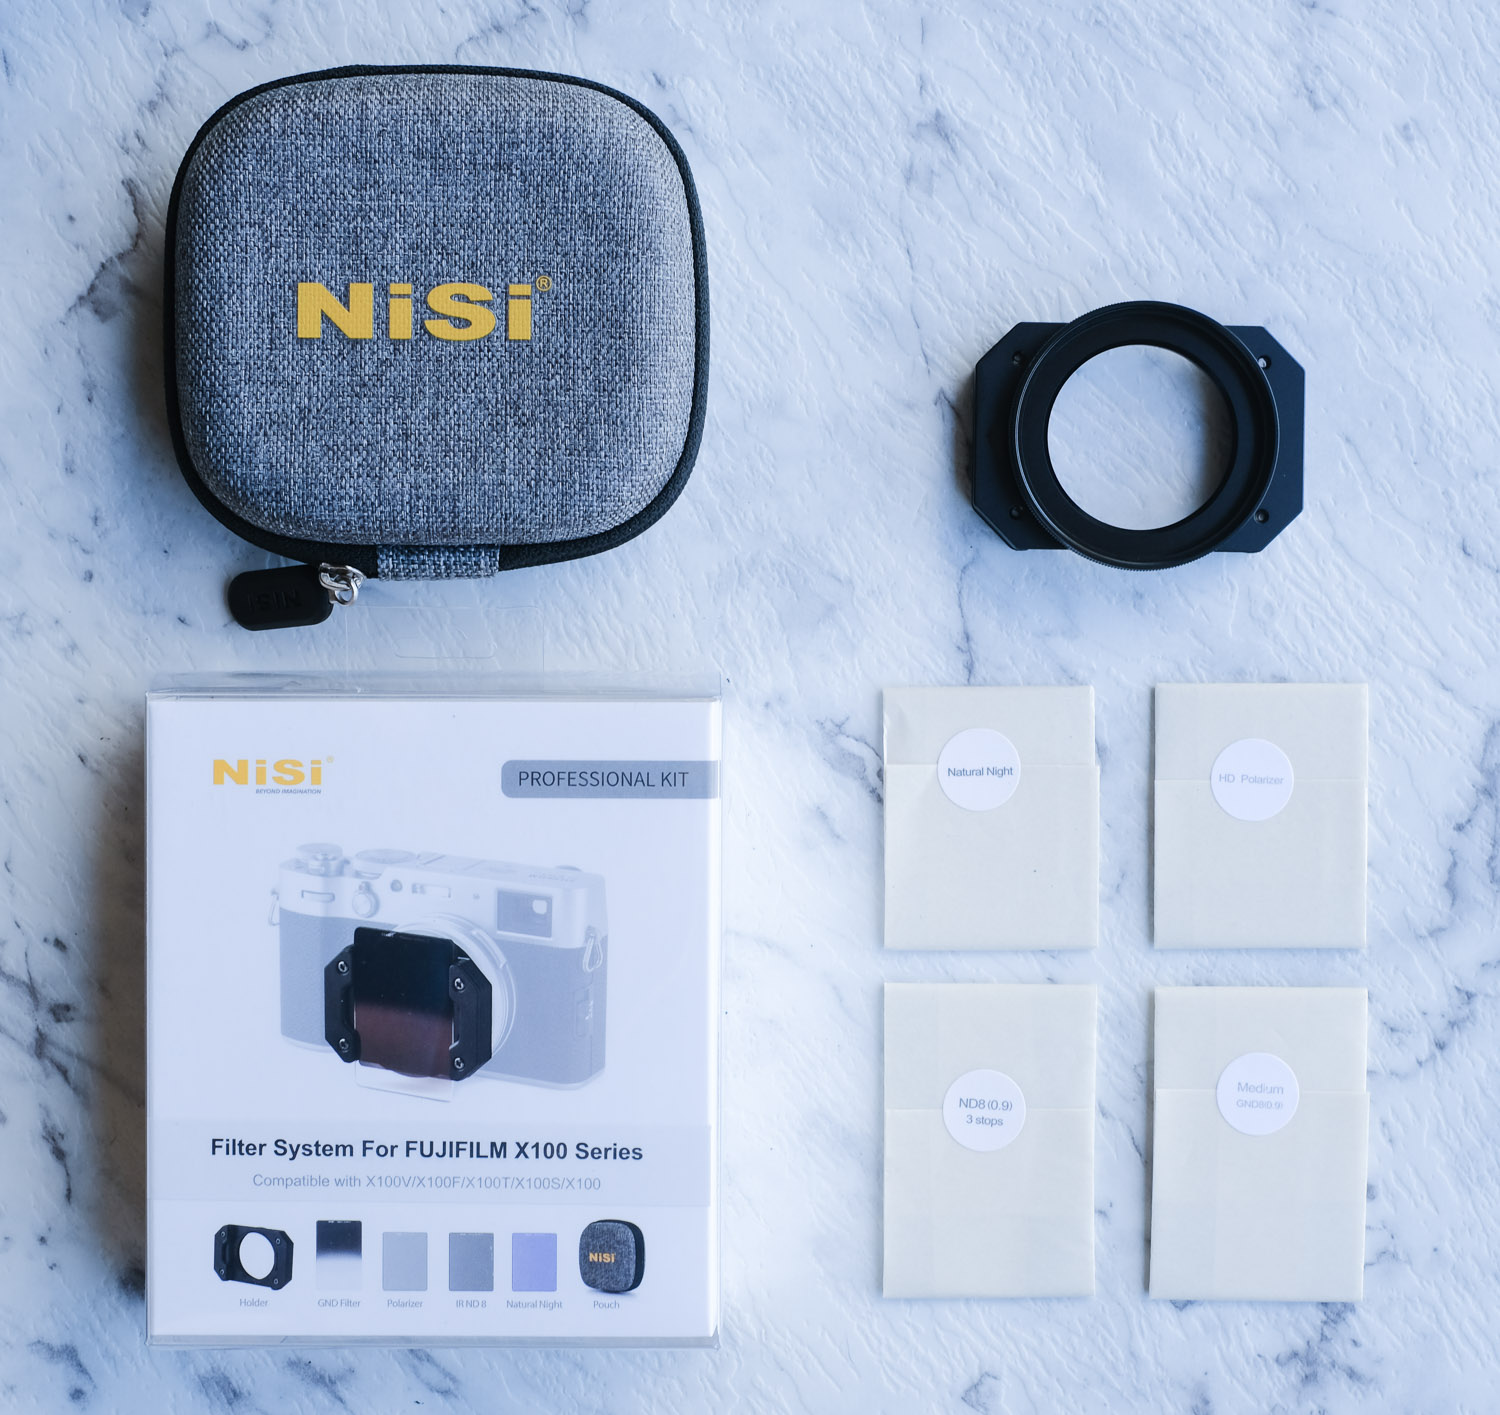 NiSi filter system review